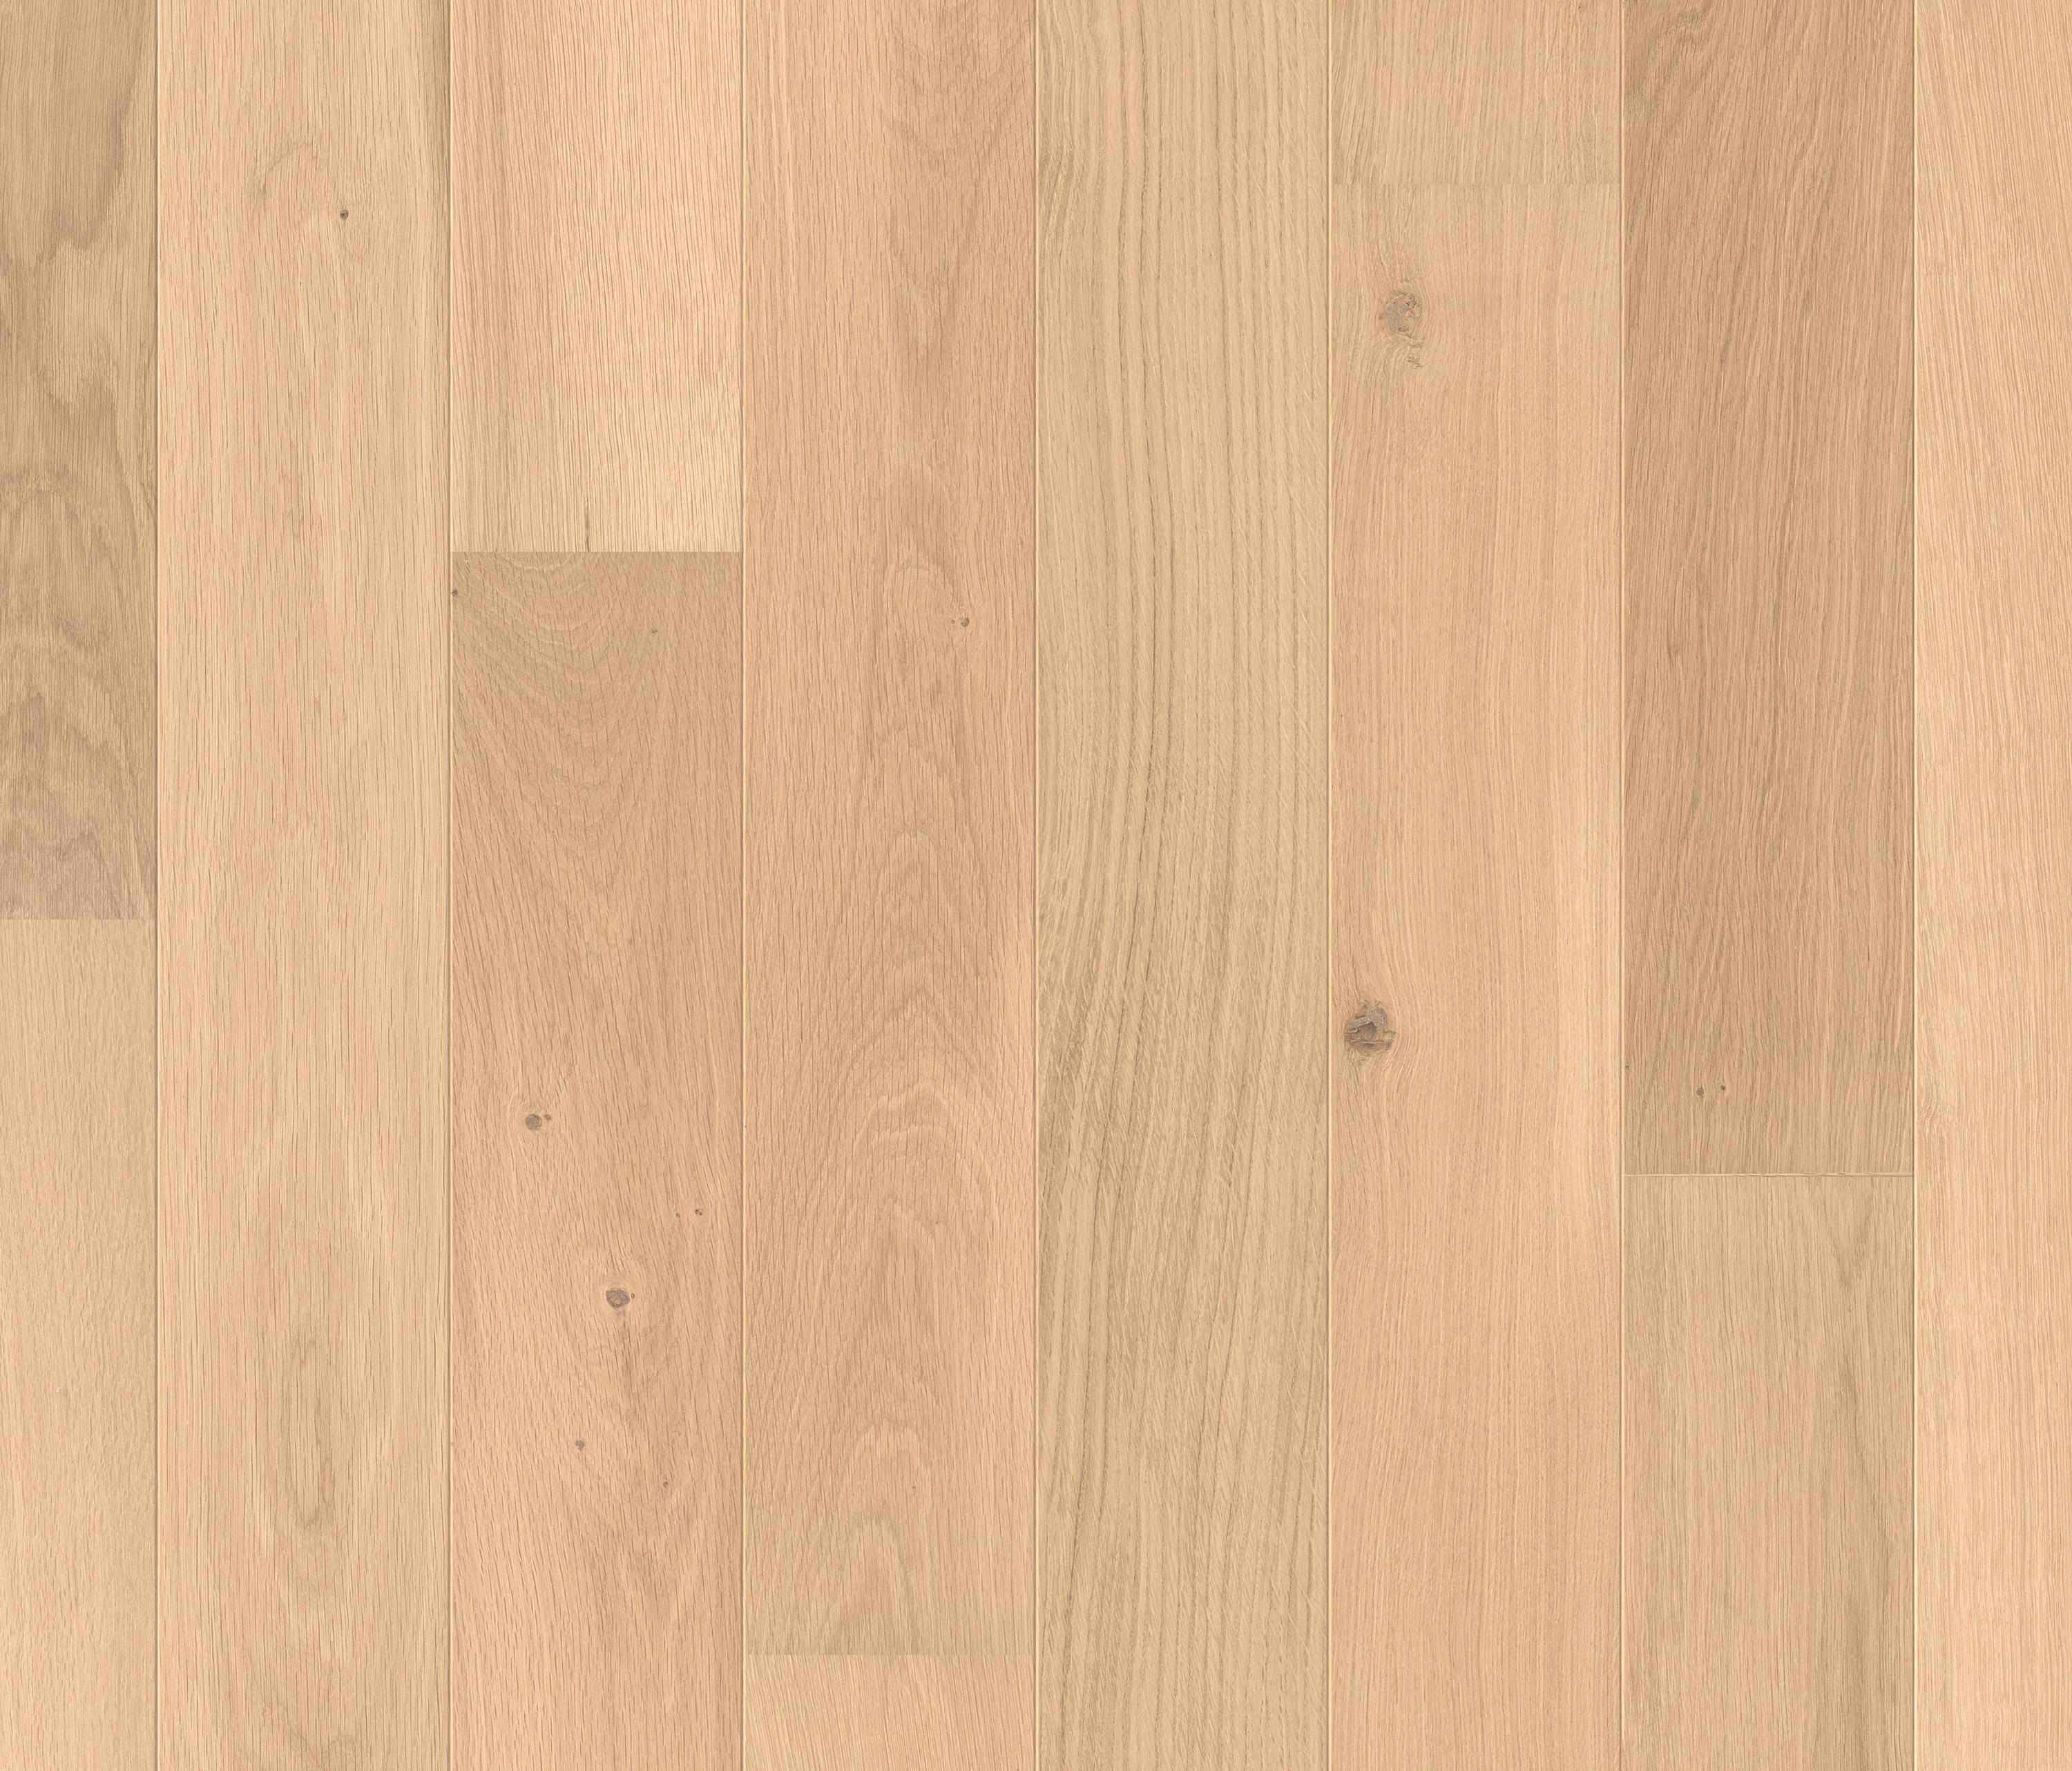 Bornholm Sand Oak Wood Flooring From Pergo Architonic